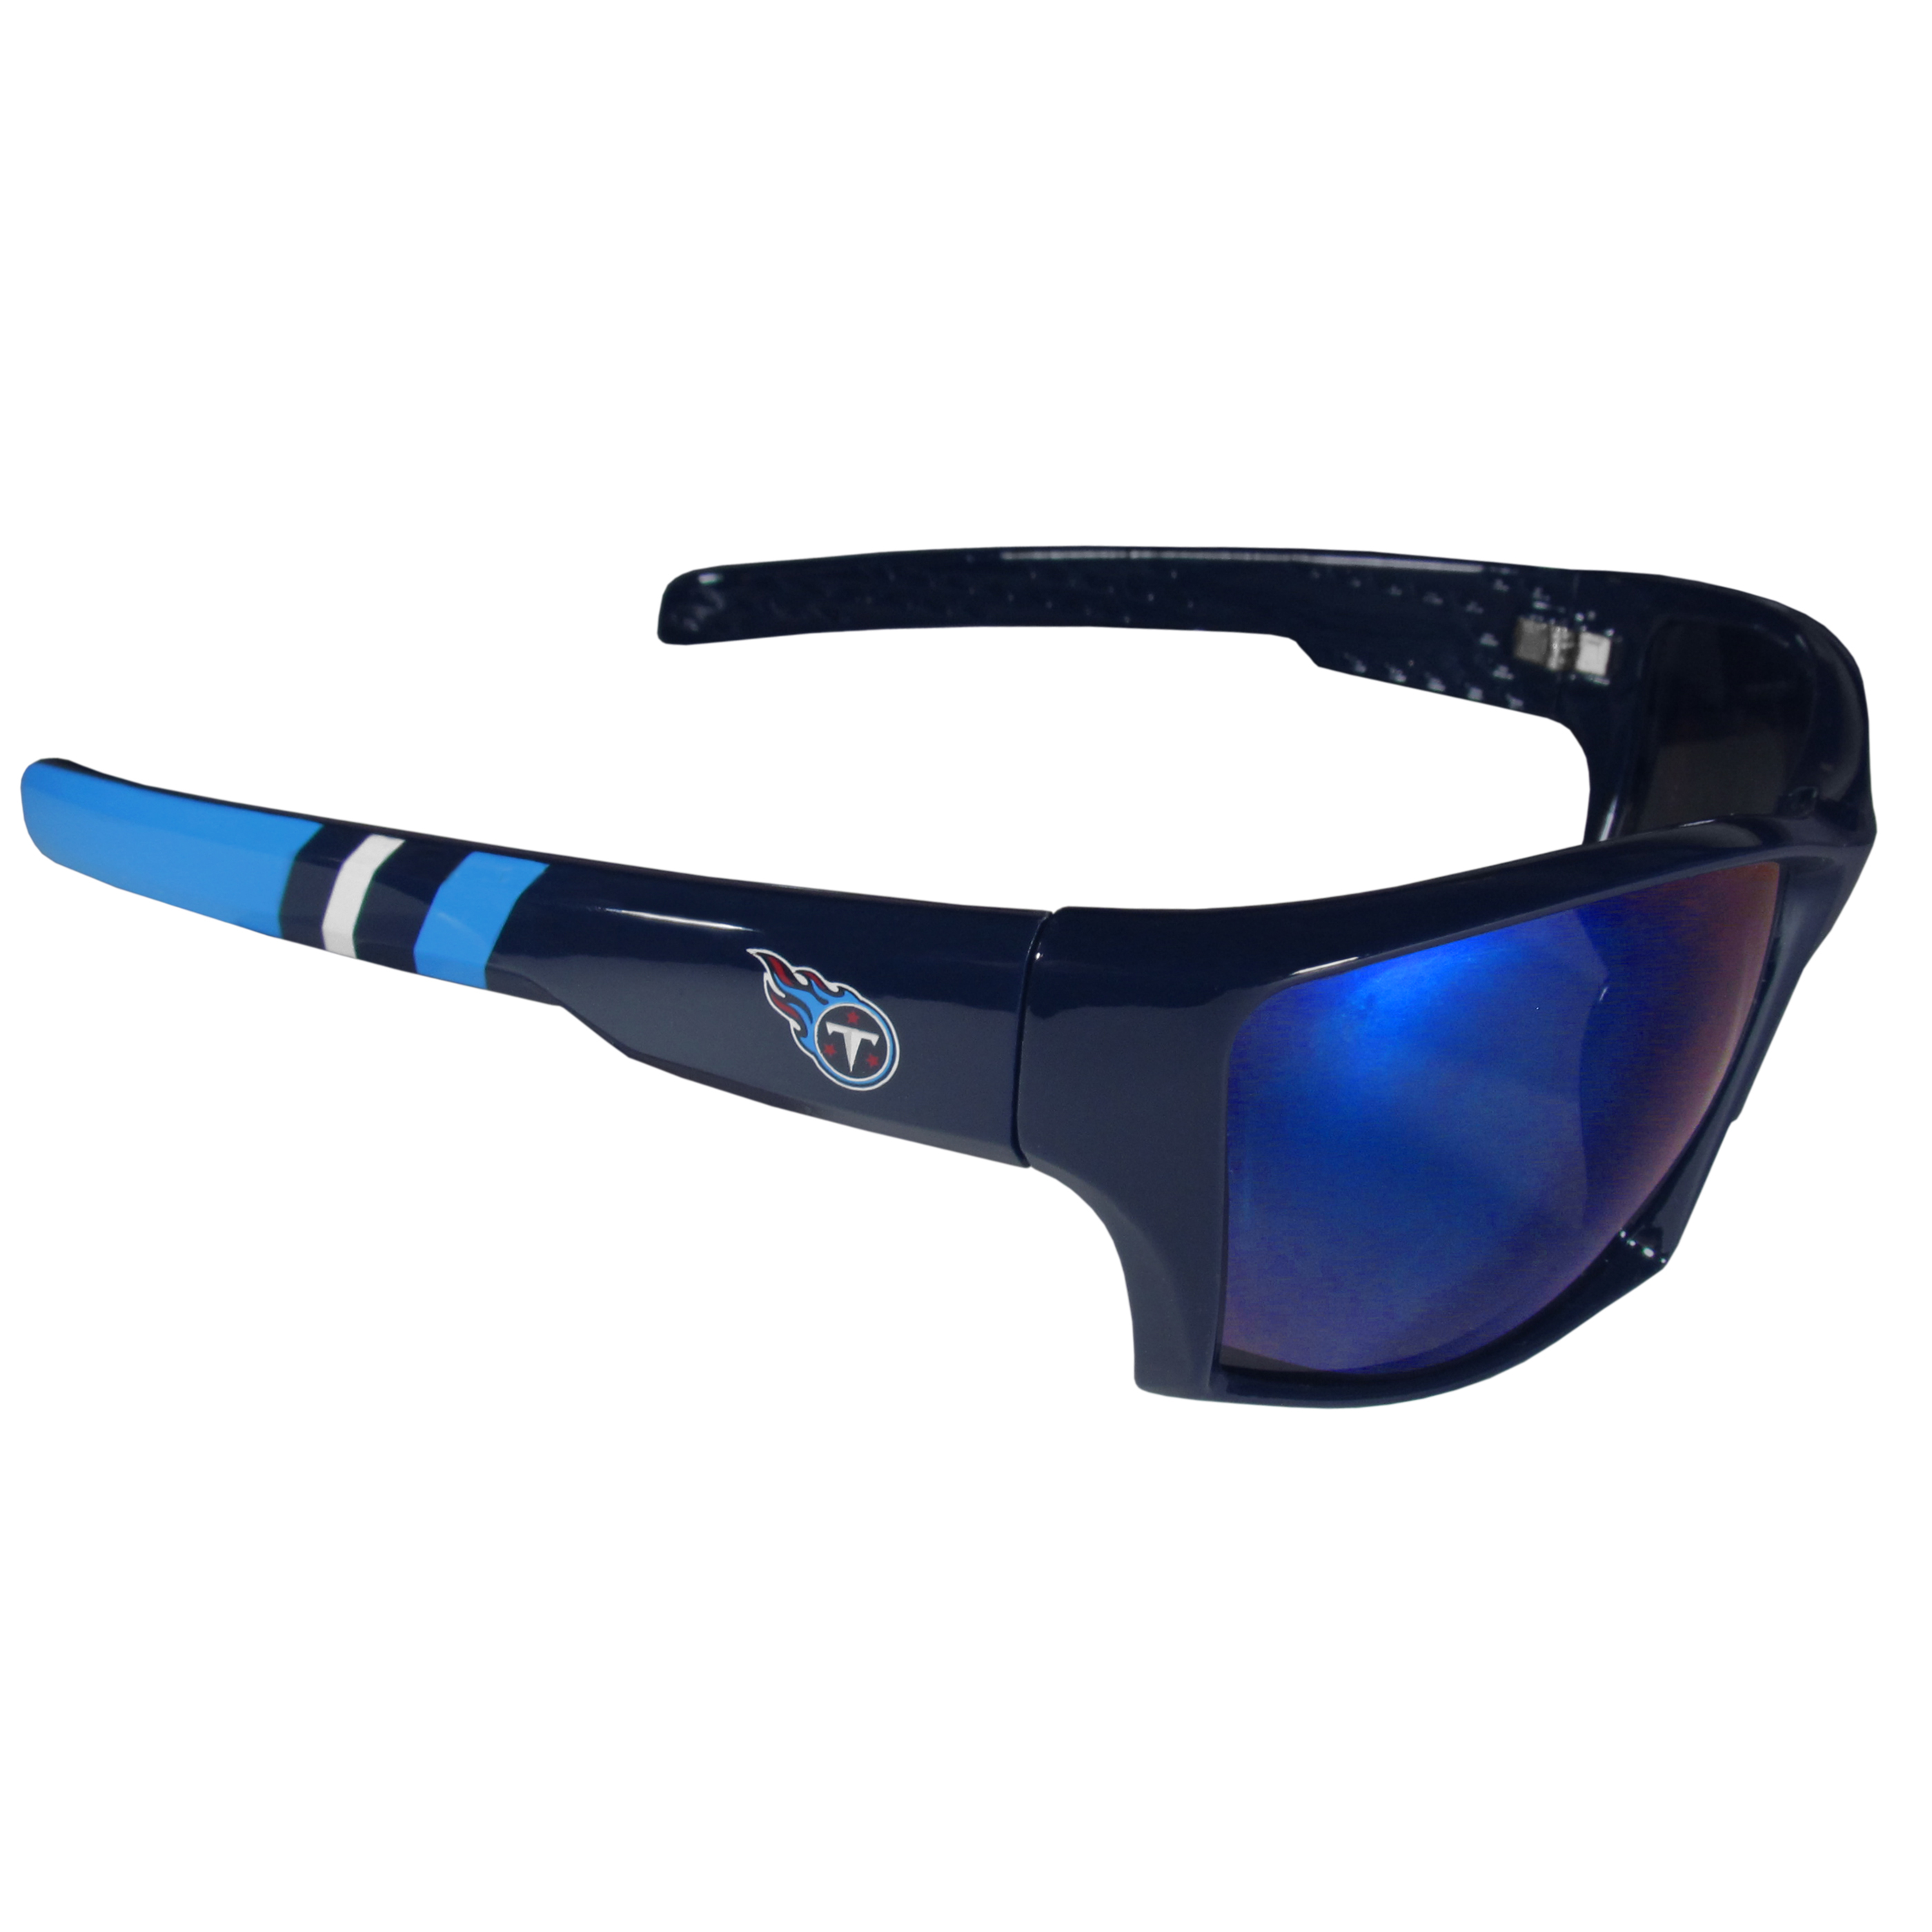 Tennessee Titans Edge Wrap Sunglasses - Be an icon of edgy style while you're in the stadium cheering your Tennessee Titans to victory with our polarized wrap sunglasses that feature 100% UVA/UVB rating for maximum UV protection. The light-weight frames are built to last with flex hinges for comfort and durability which make them perfect for driving or just lounging by the pool. The colorful rubber grips on the arms of these fashionable sunglasses make them perfect for someone with an active lifestyle. Whether you are hiking, fishing, boating, running on the beach, golfing or playing your favorite sport these designer frames will set you apart. Our edge wrap sunglasses are true quality eyewear at an affordable price. The wrap style frames come with team colored stripes and team logos so you can show off your die-hard team pride while protecting your eyes from those bright sun rays.